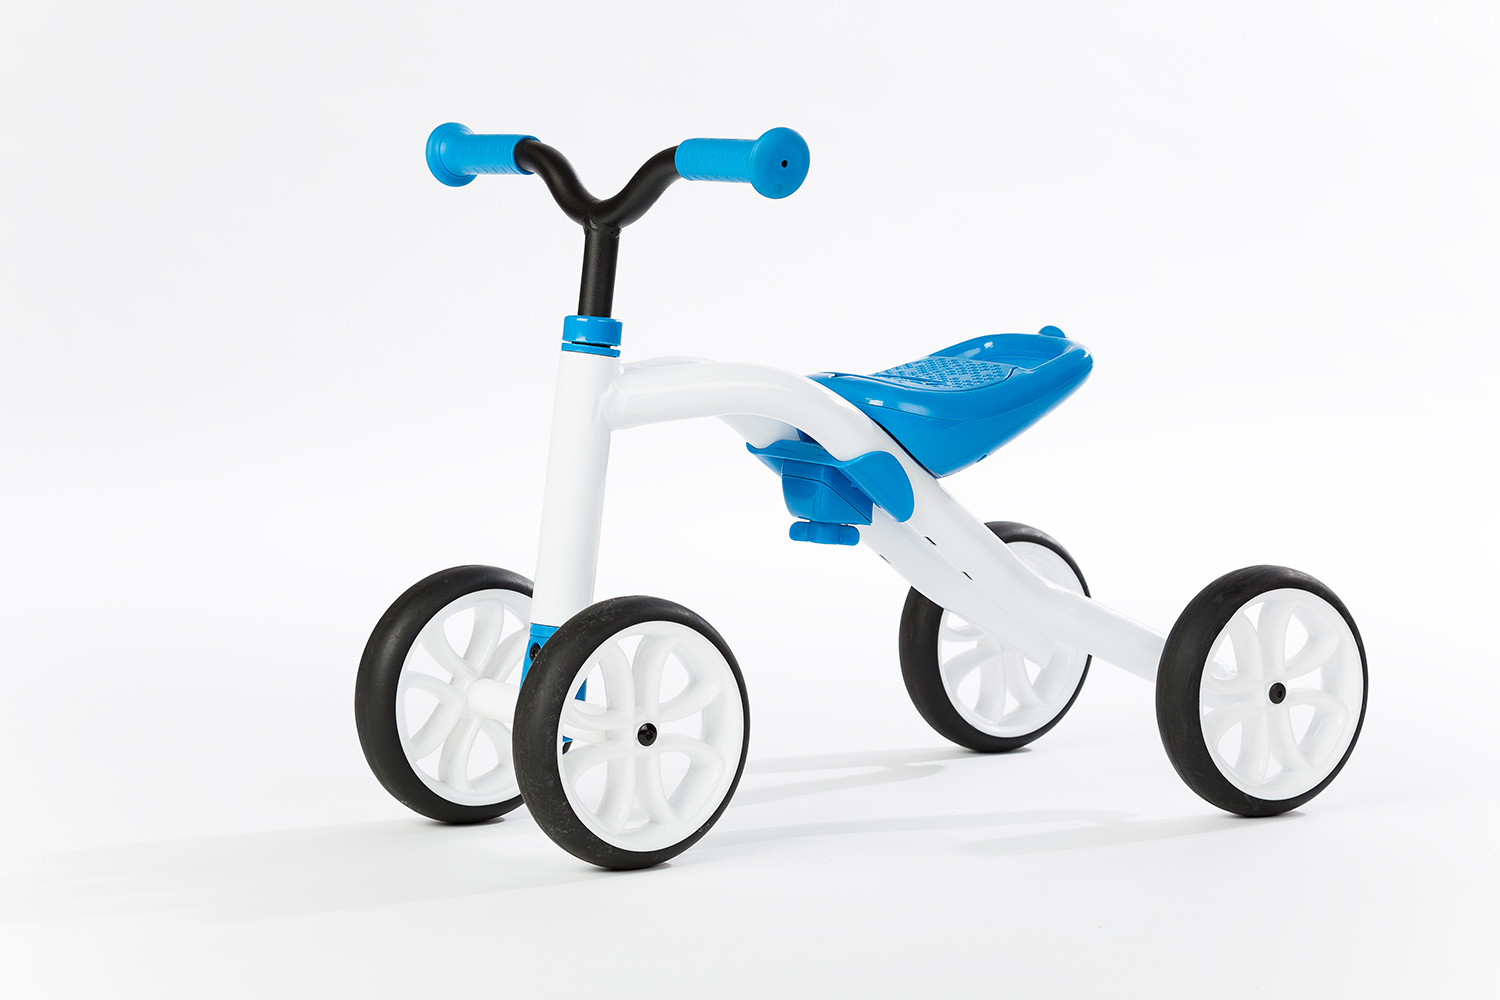 Chillafish Bmxie 2 Bmx Styled Balance Bike With Integrated Footrest Footbrake